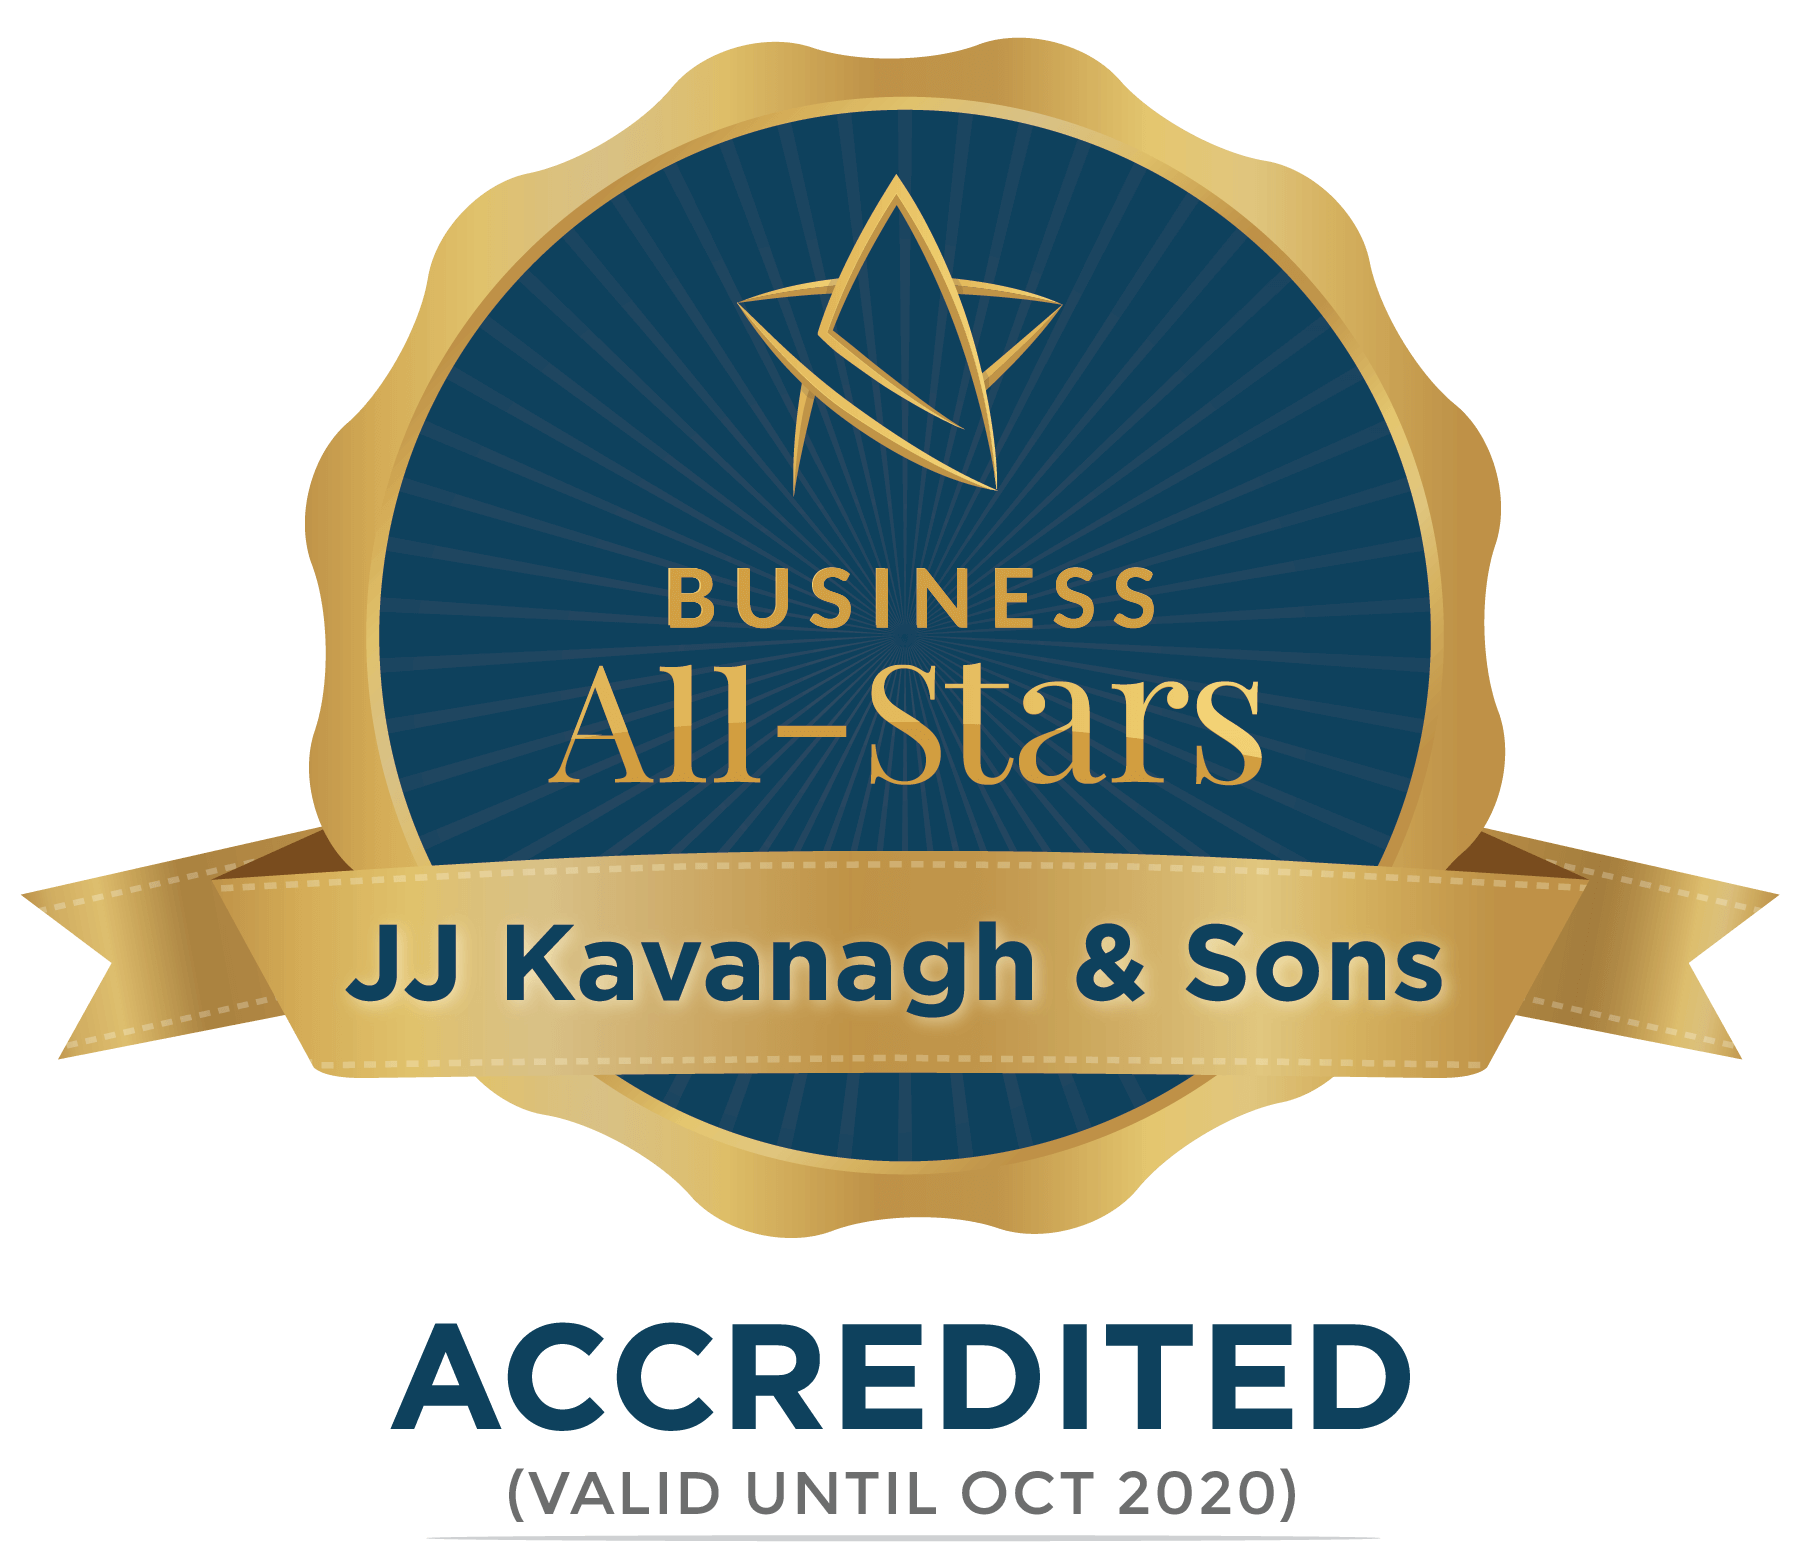 JJ Kavanagh & Sons - Business All-Stars Accreditation